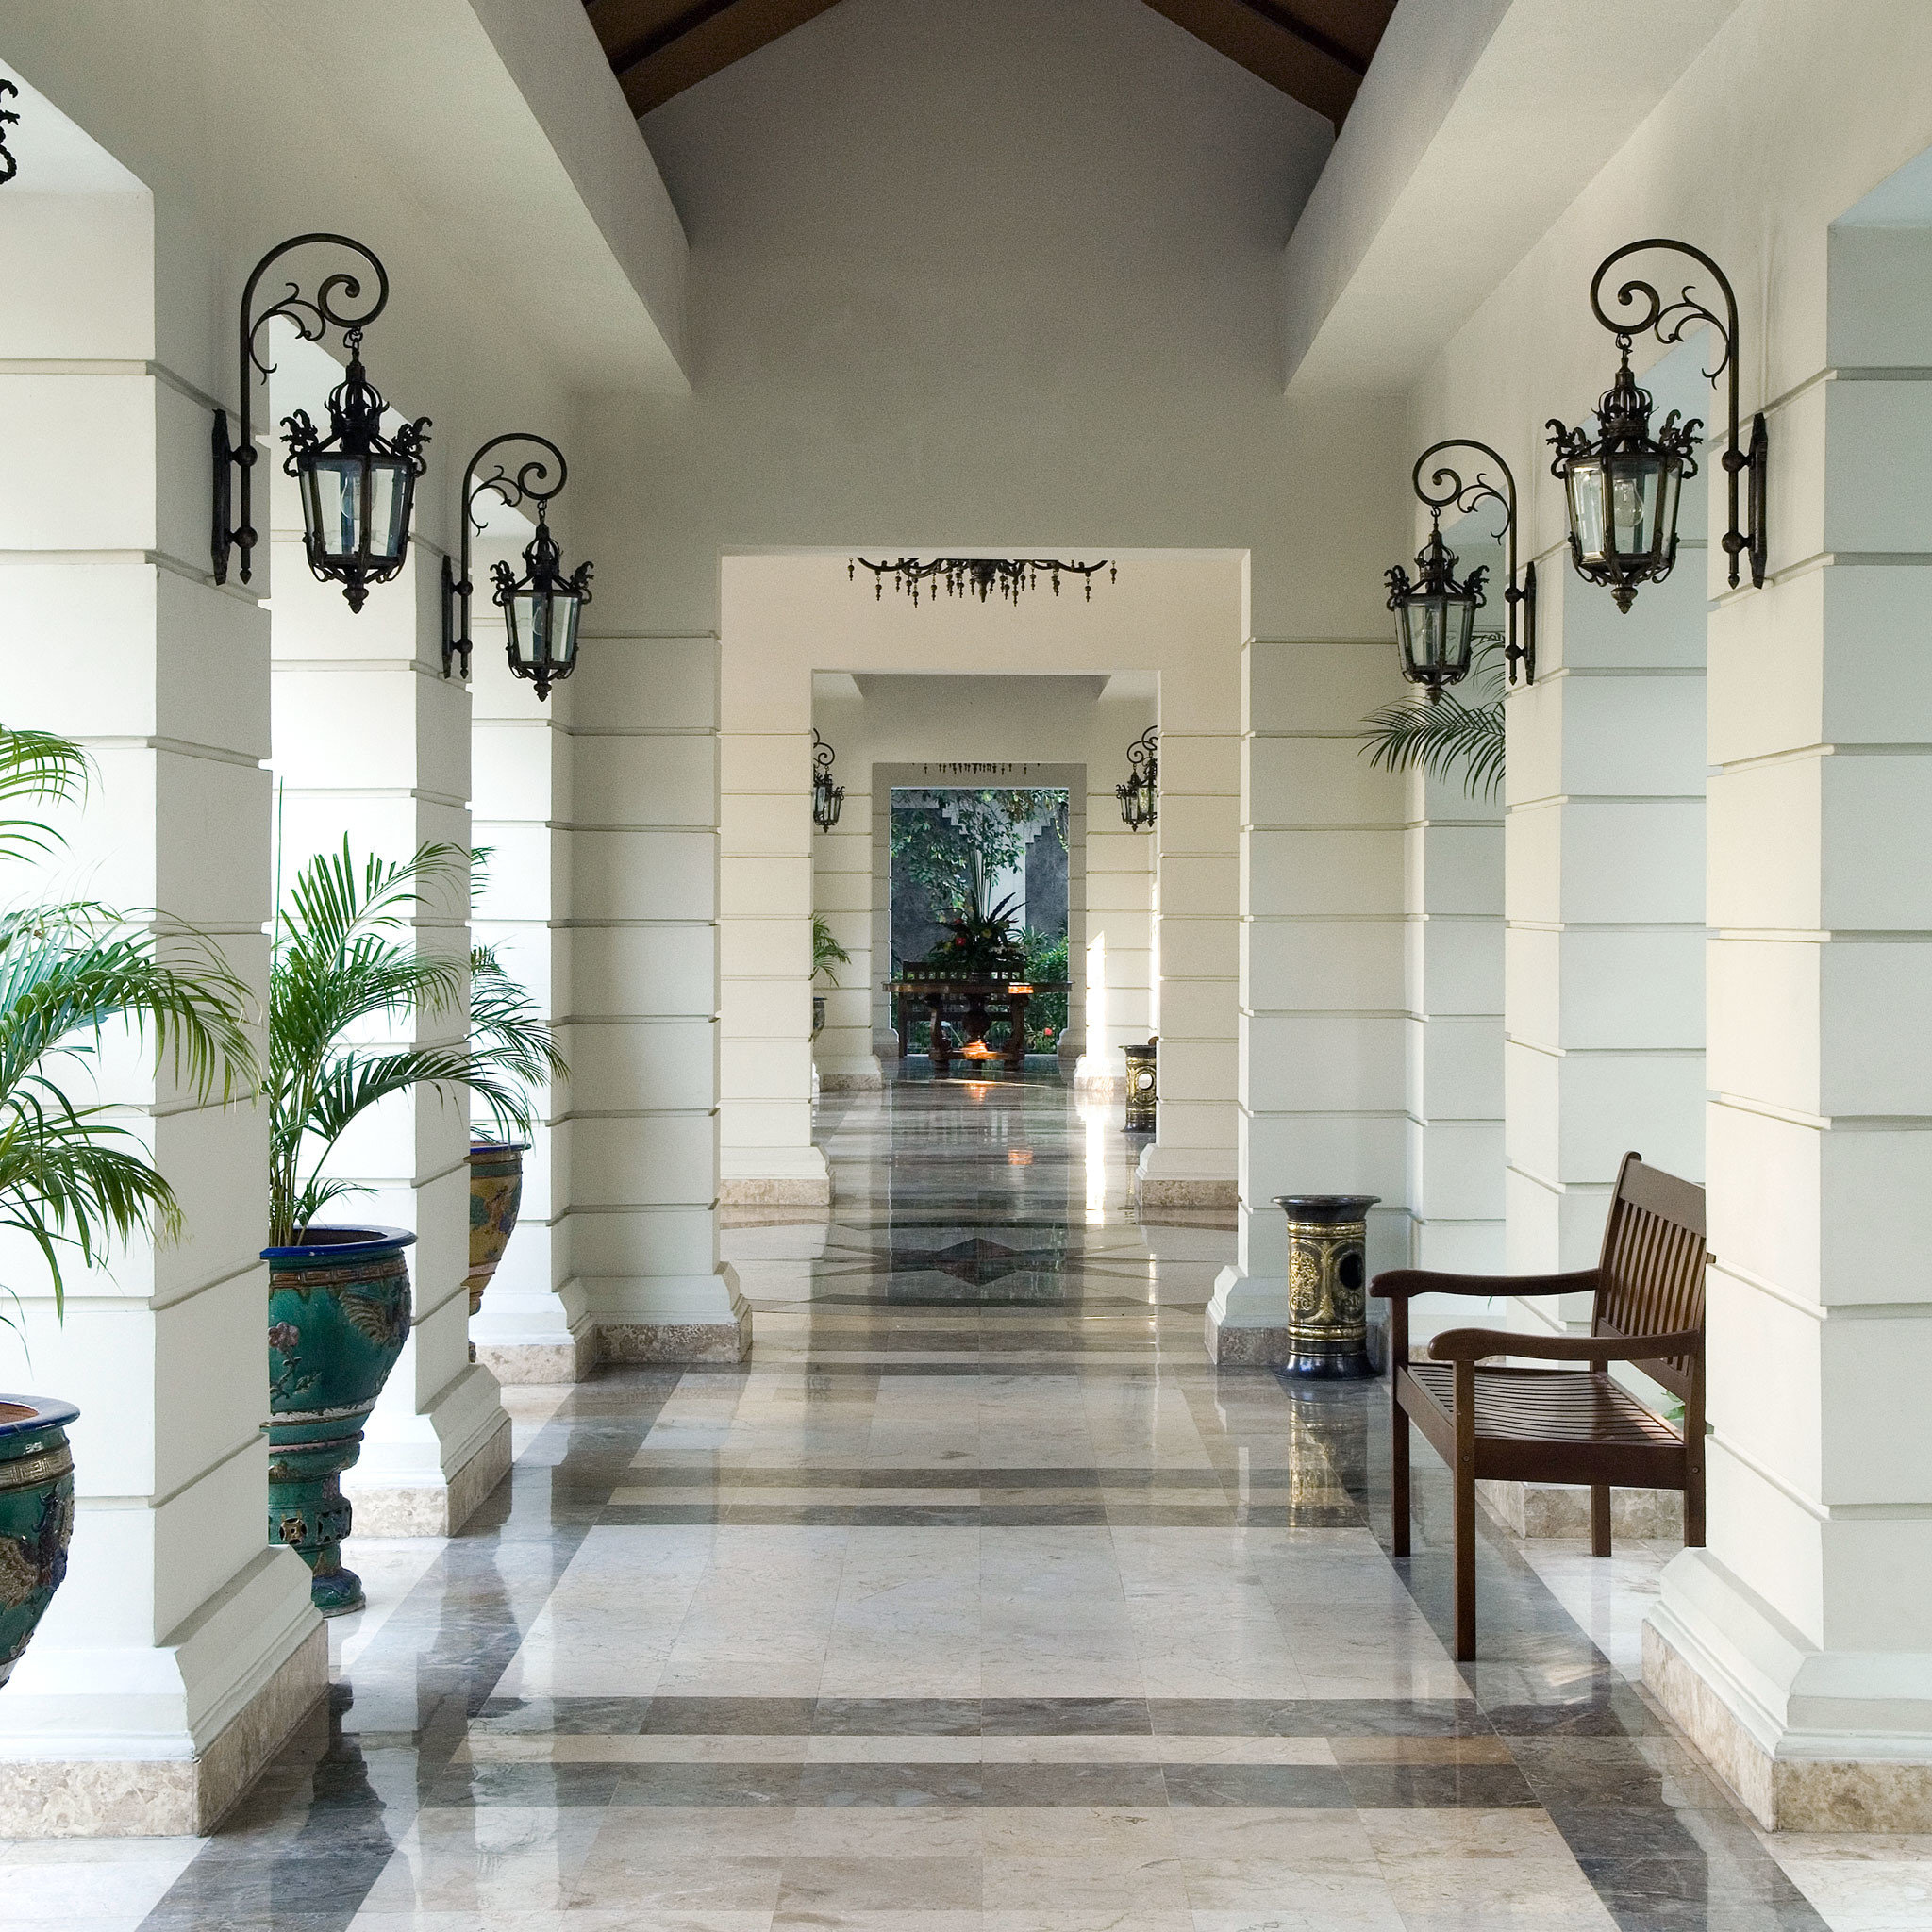 Architecture Buildings Grounds Resort Lobby property living room home flooring hall tourist attraction altar colonnade